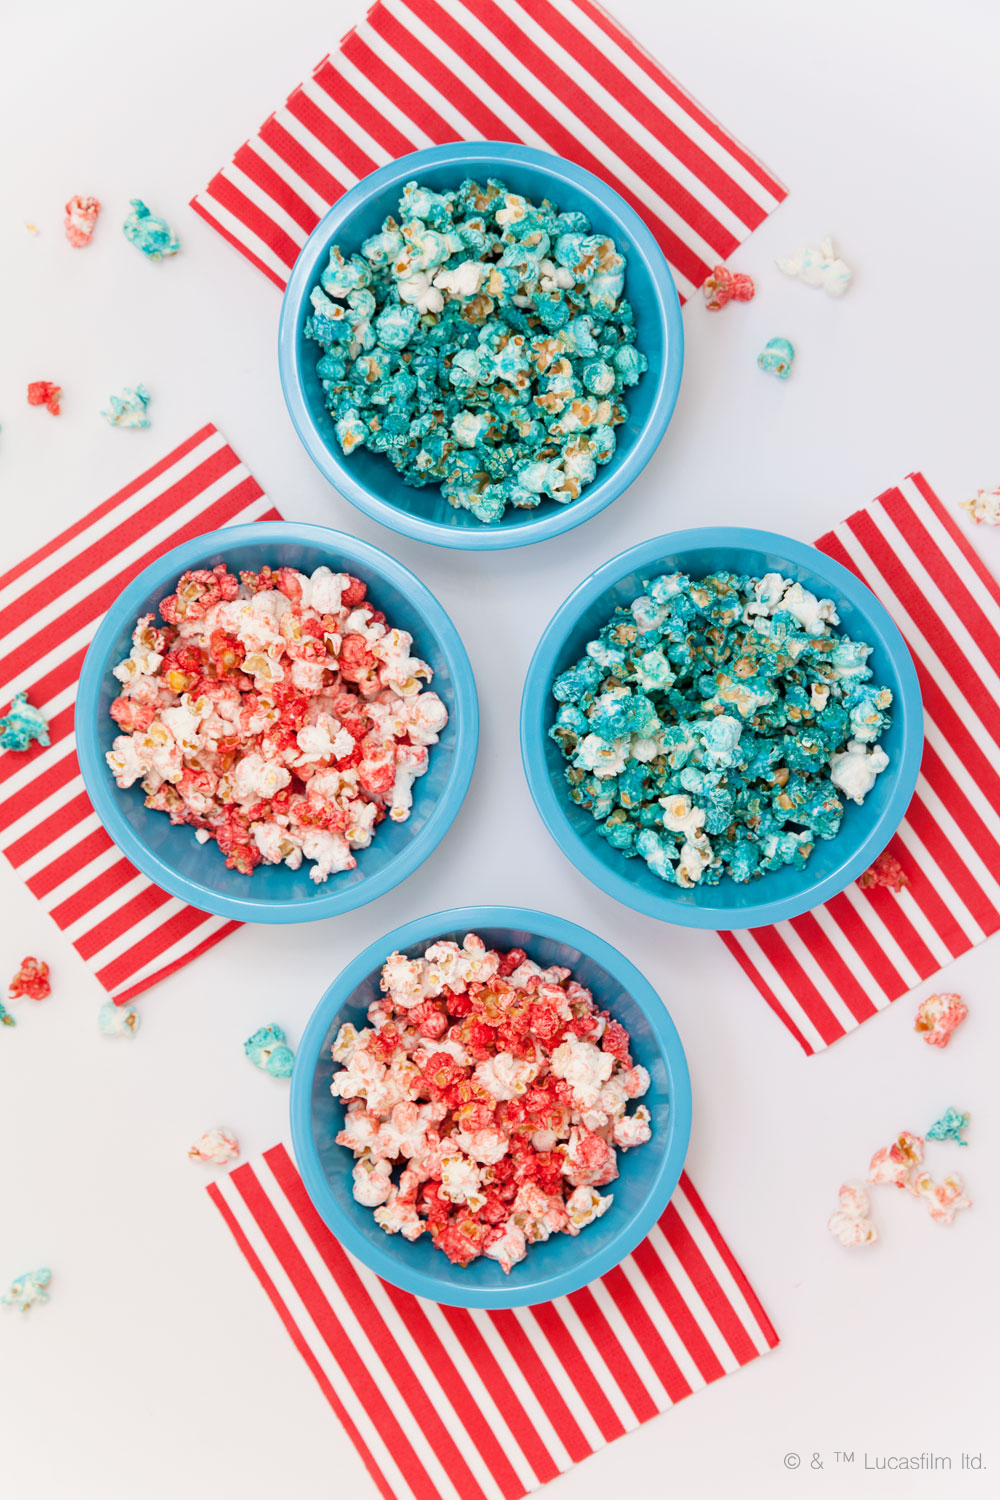 Colored-popcorn LTD